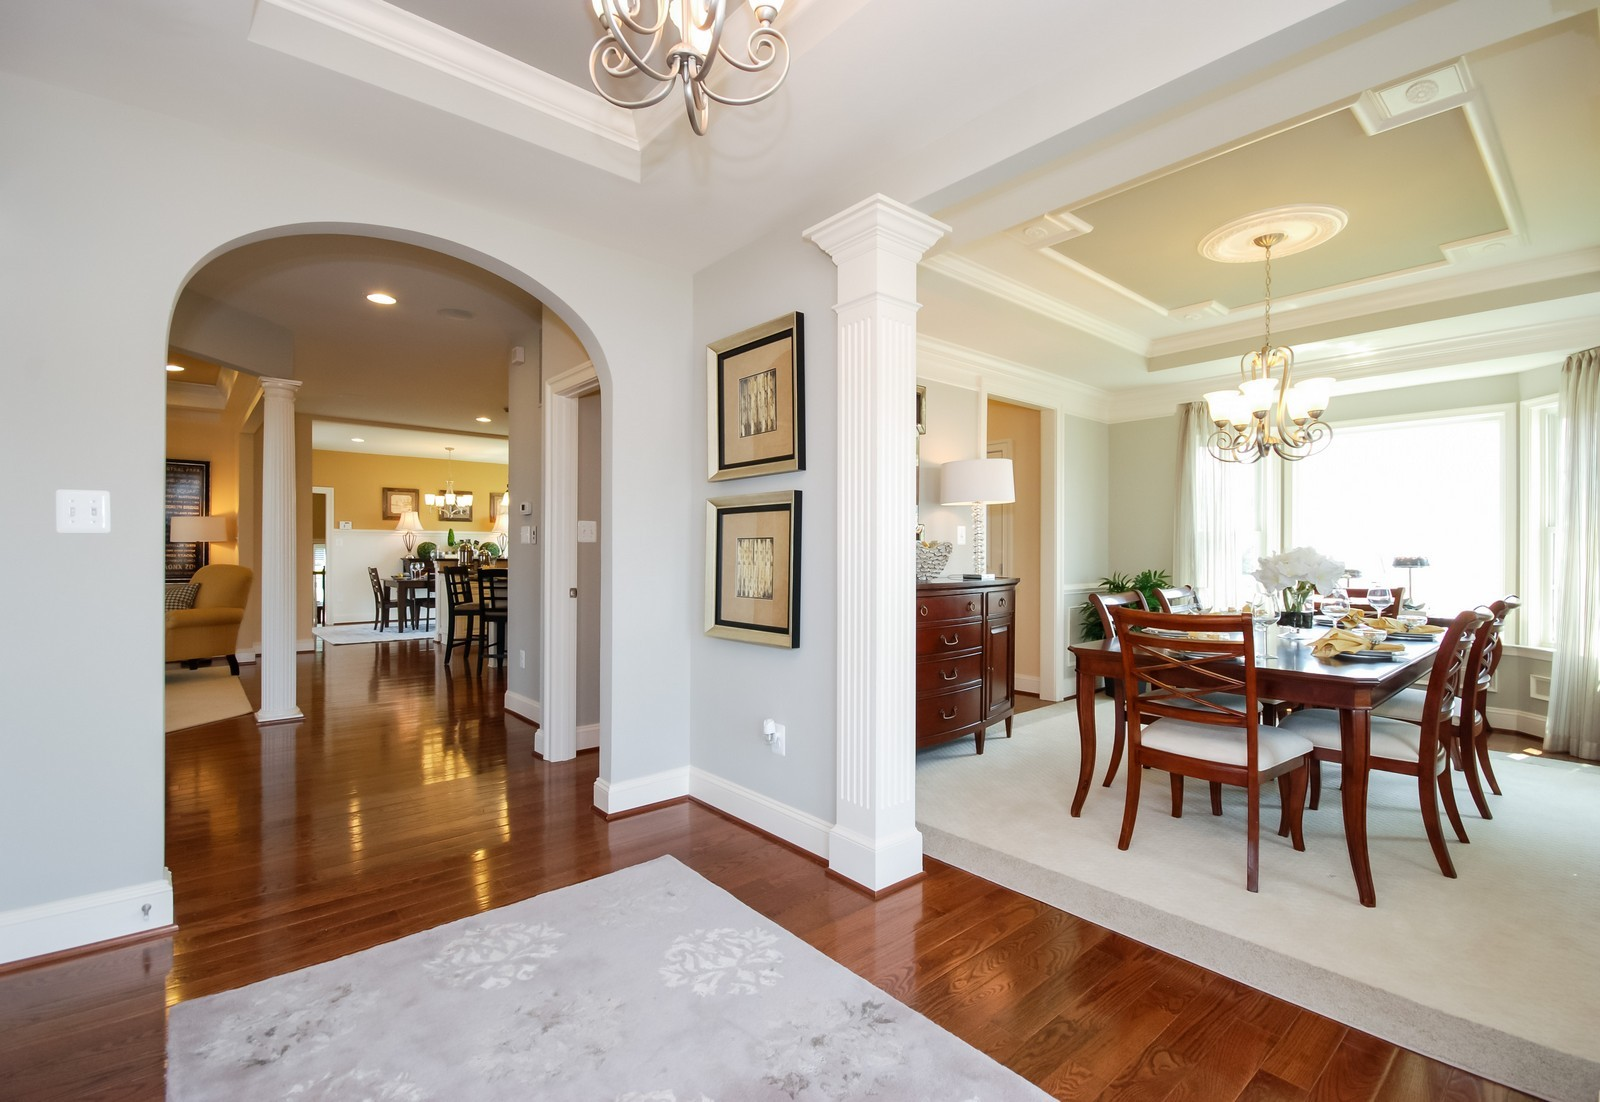 Doylestown Real Estate Photography 3676 Christopher Day Way Abingshire Nvhomes 20483